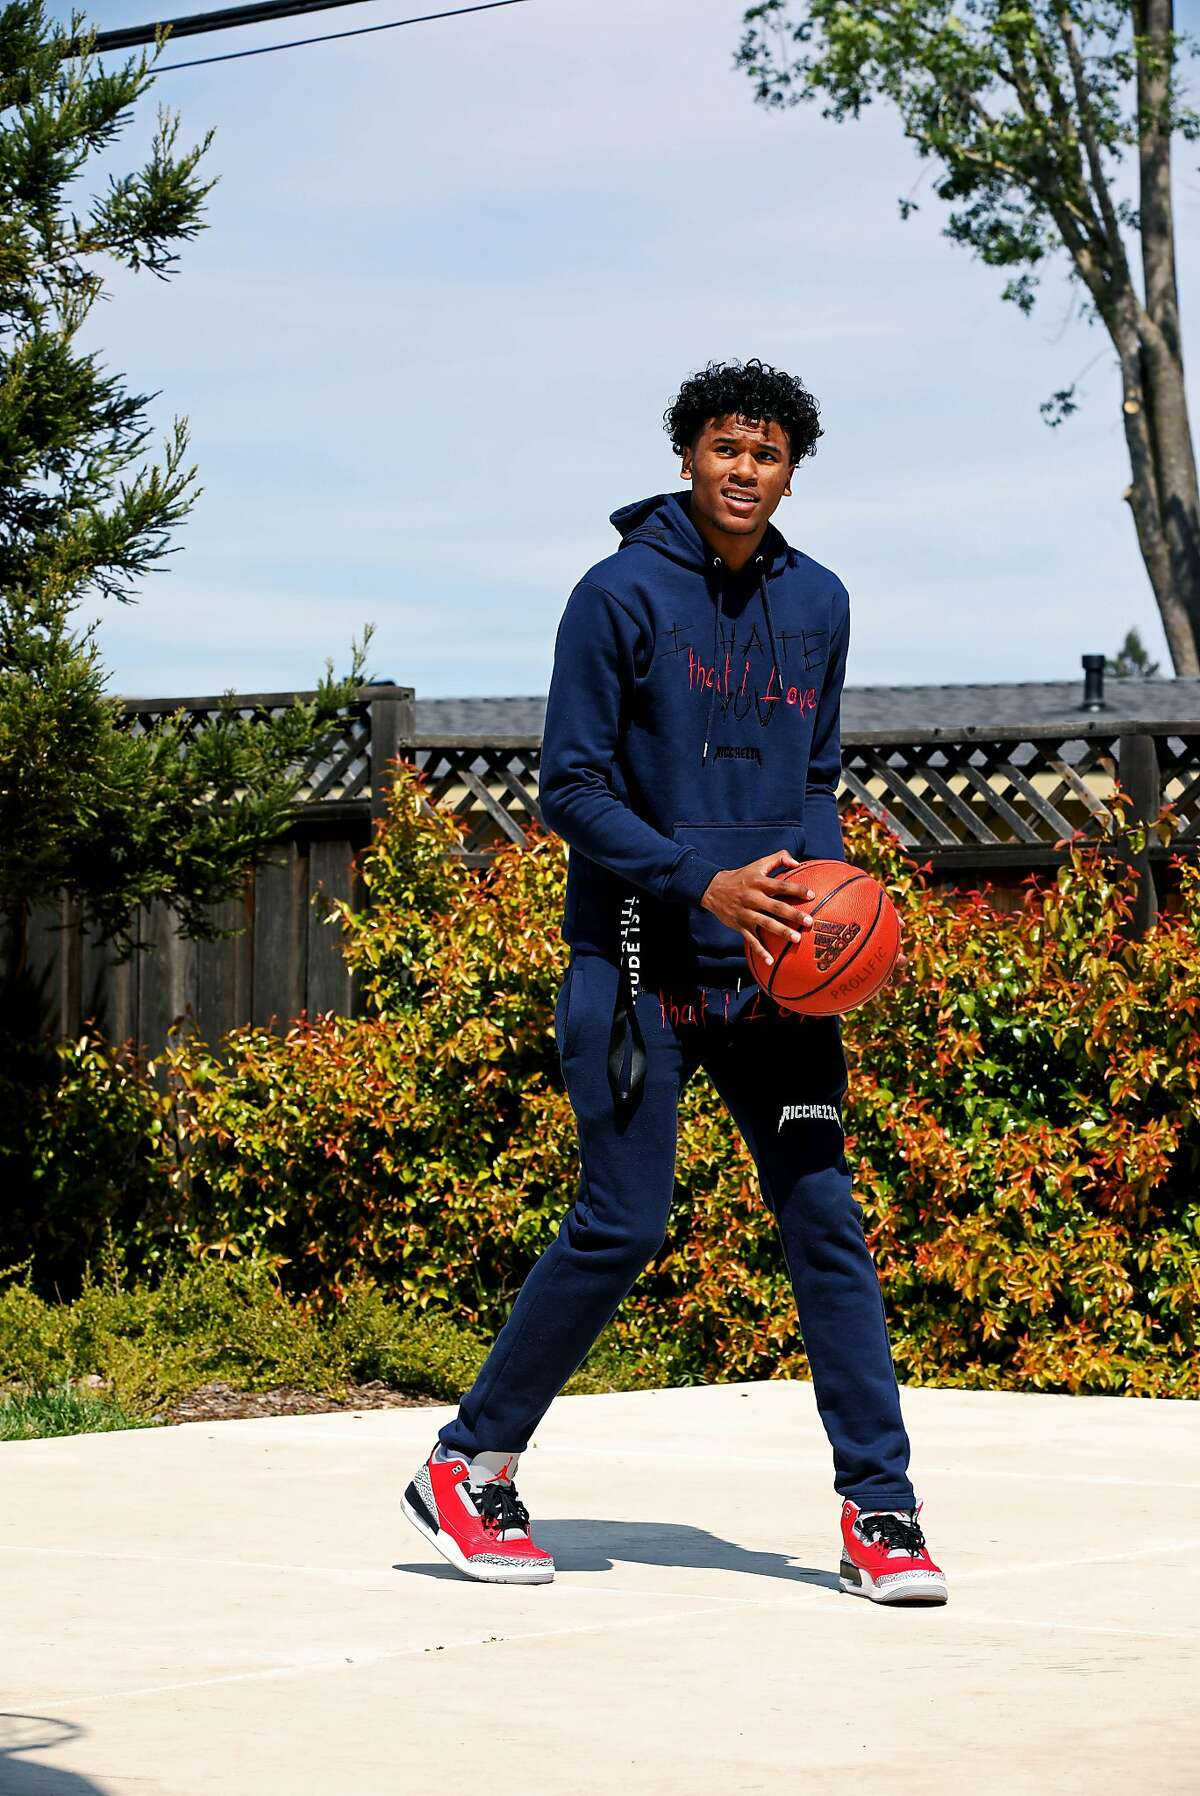 High School basketball star Jalen Green, 18, shoots a basket in his neighborhood on Friday, March 27, 2020, in Napa, Calif. The 6'6